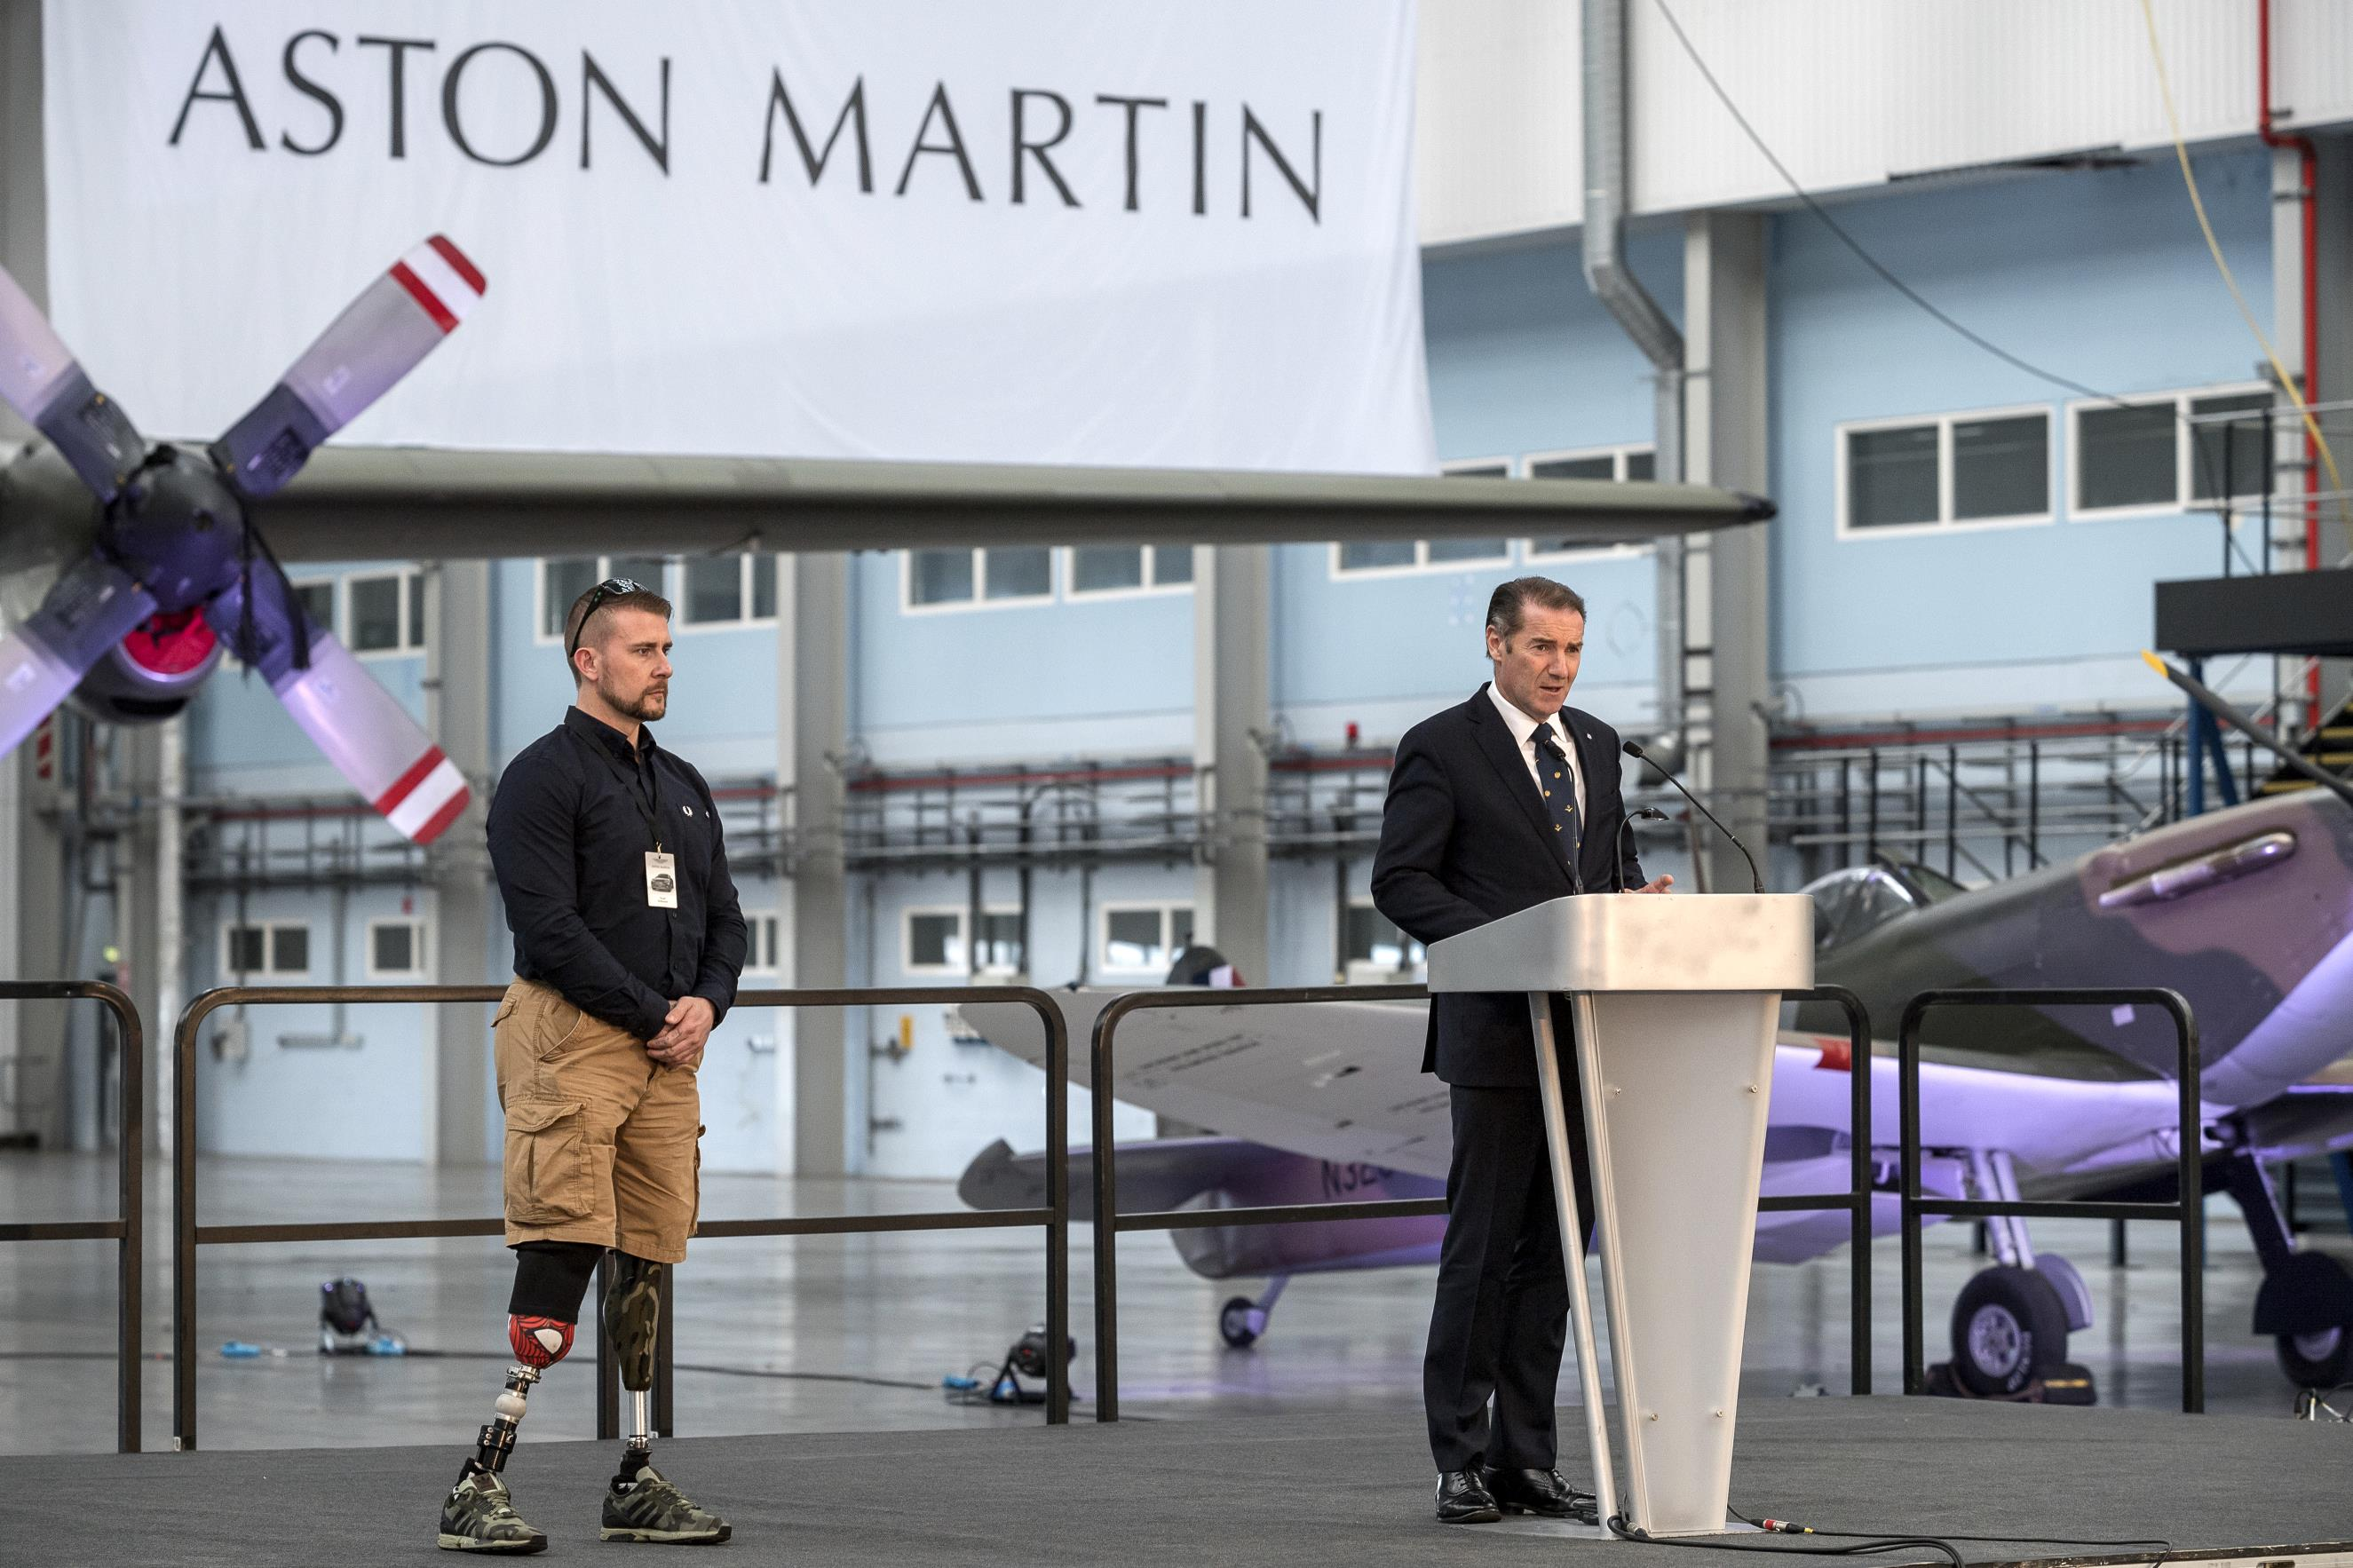 Aston Martin partnership with the Royal Air Force Benevolent Fund